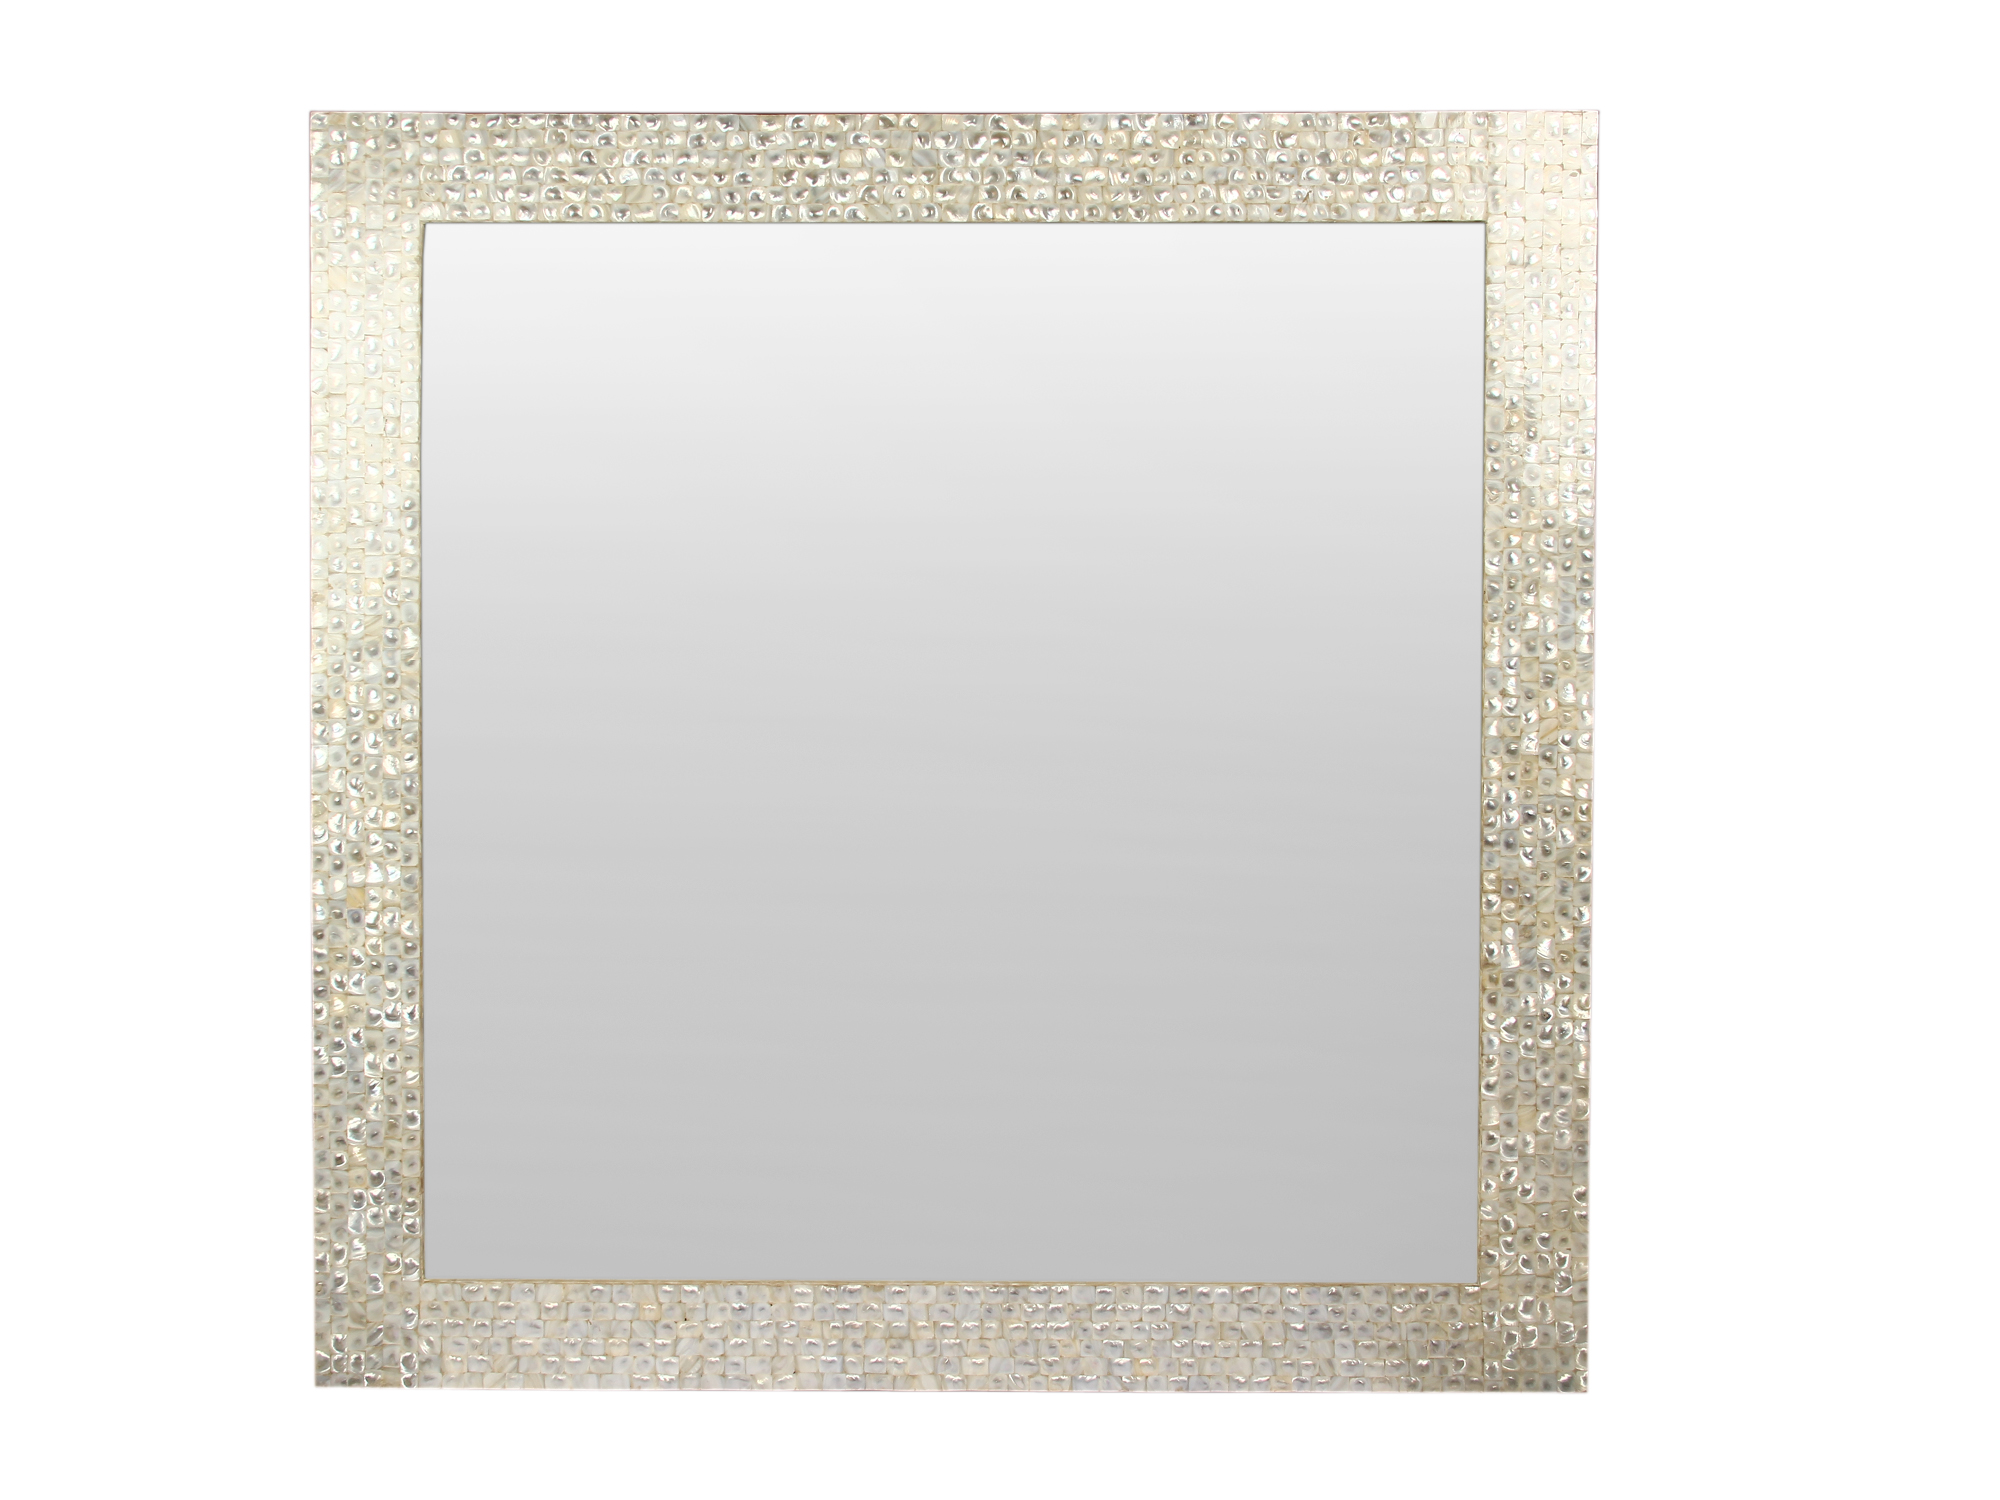 white mother of pearl mirror frame size 3x3 - Mirror Frame